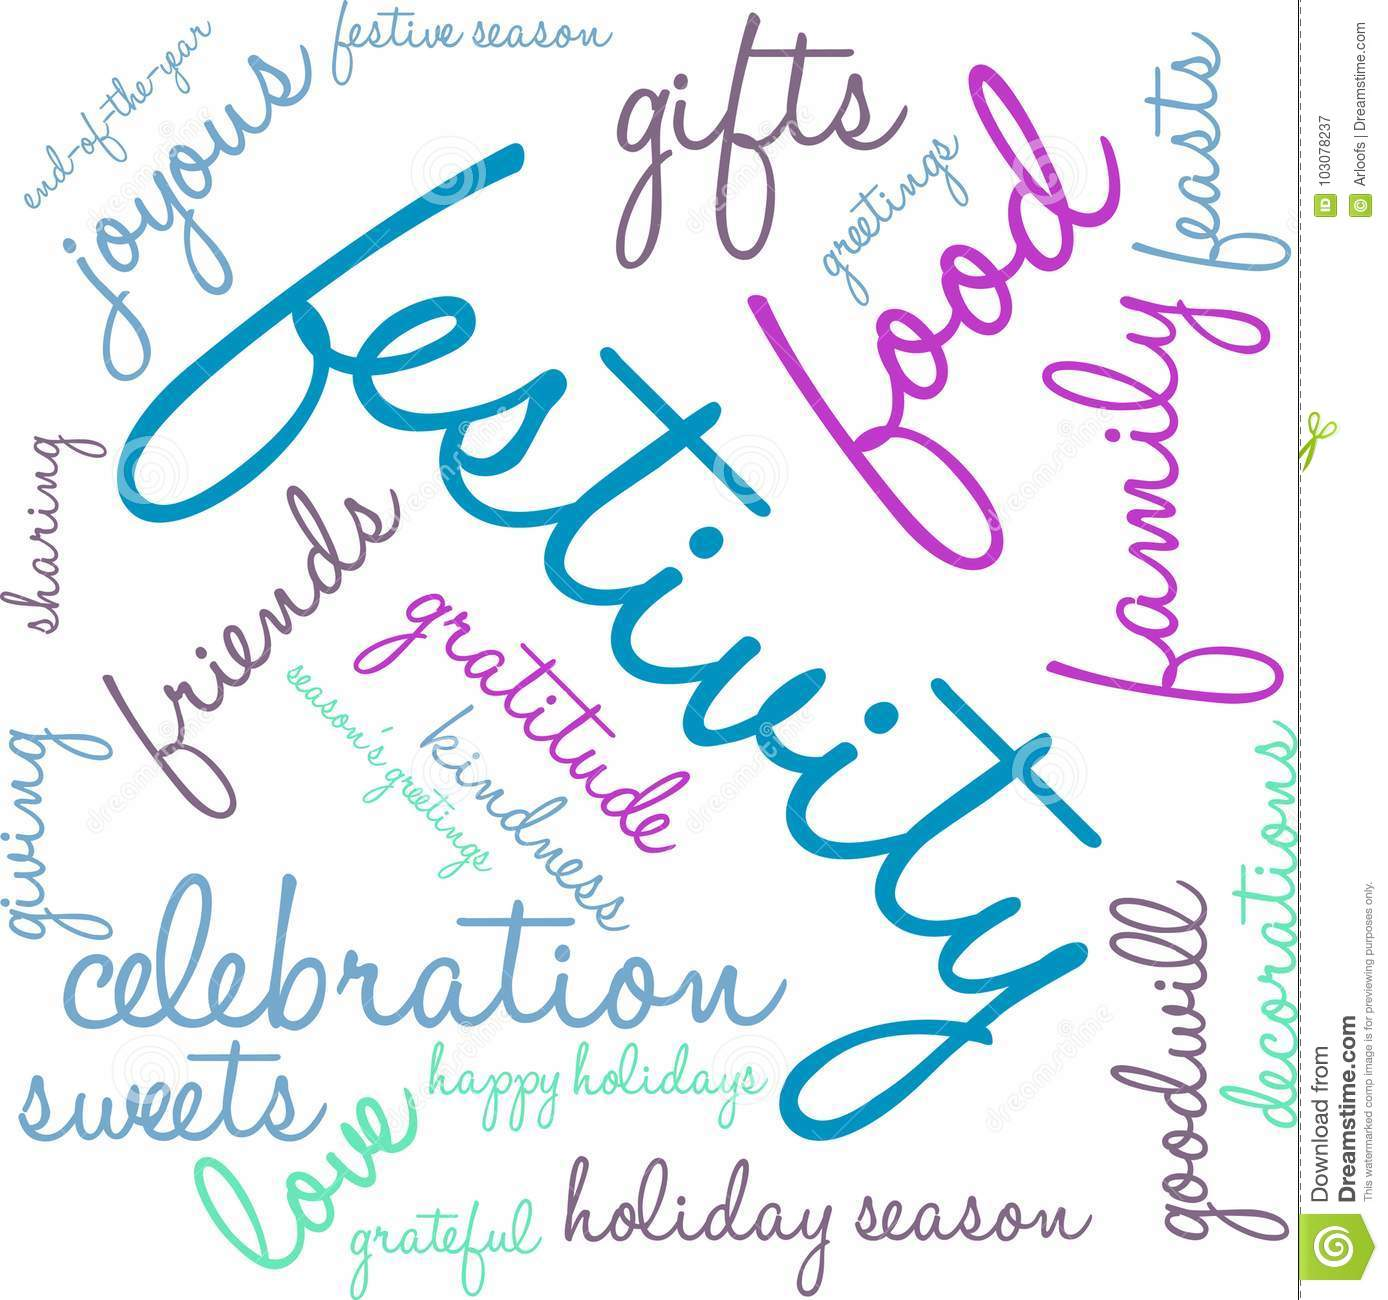 Festivity Word Cloud